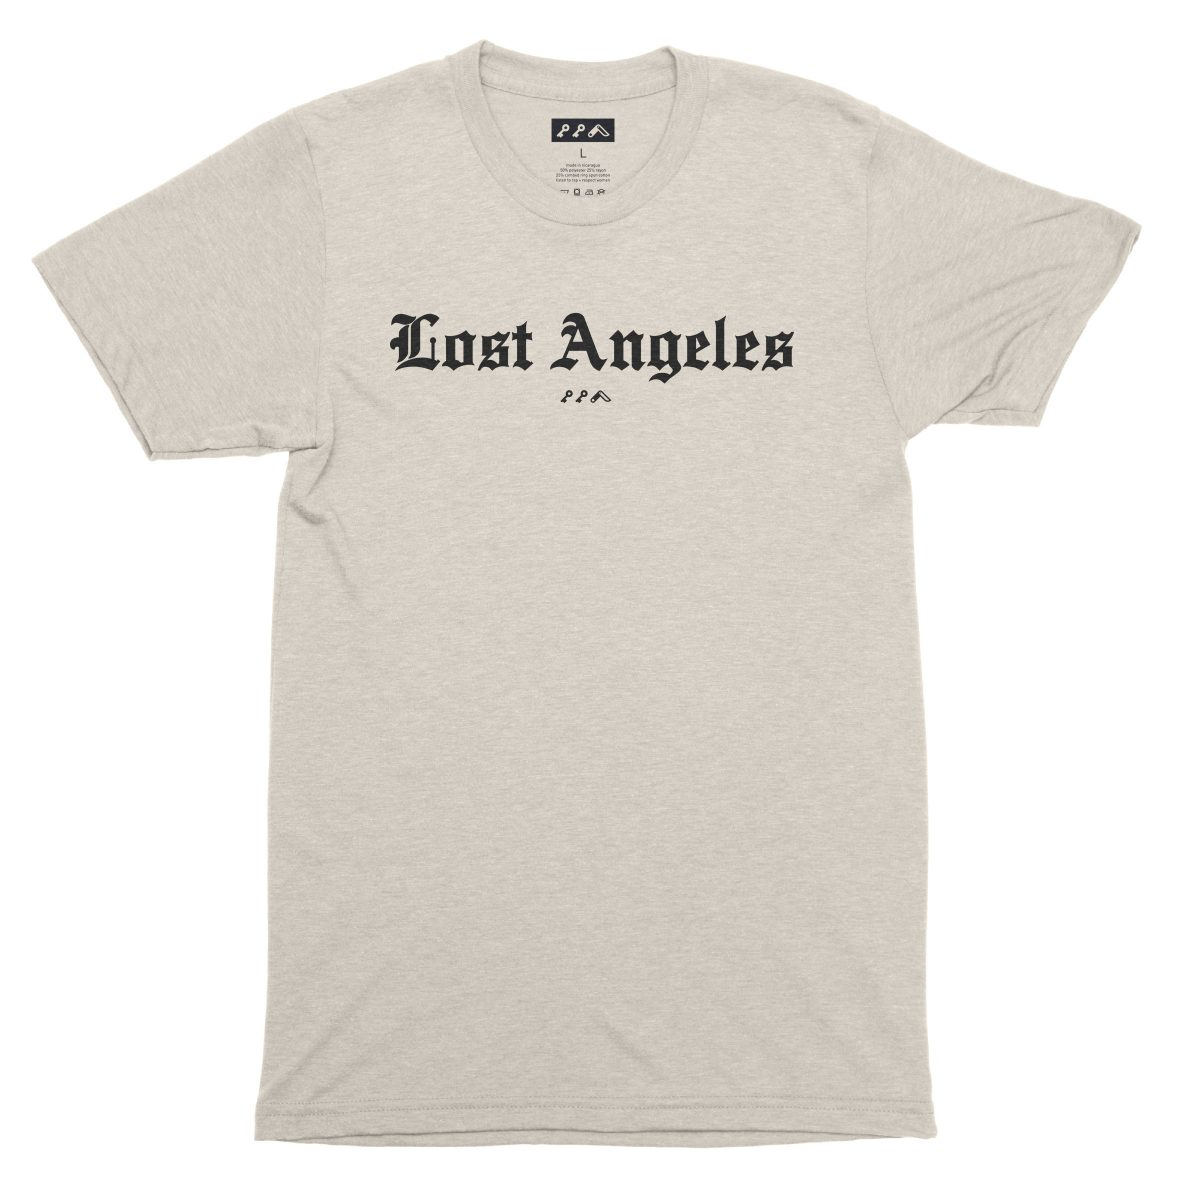 """Lost Angeles"" soft tri-blend t-shirts in oatmeal by KIKICUTT"